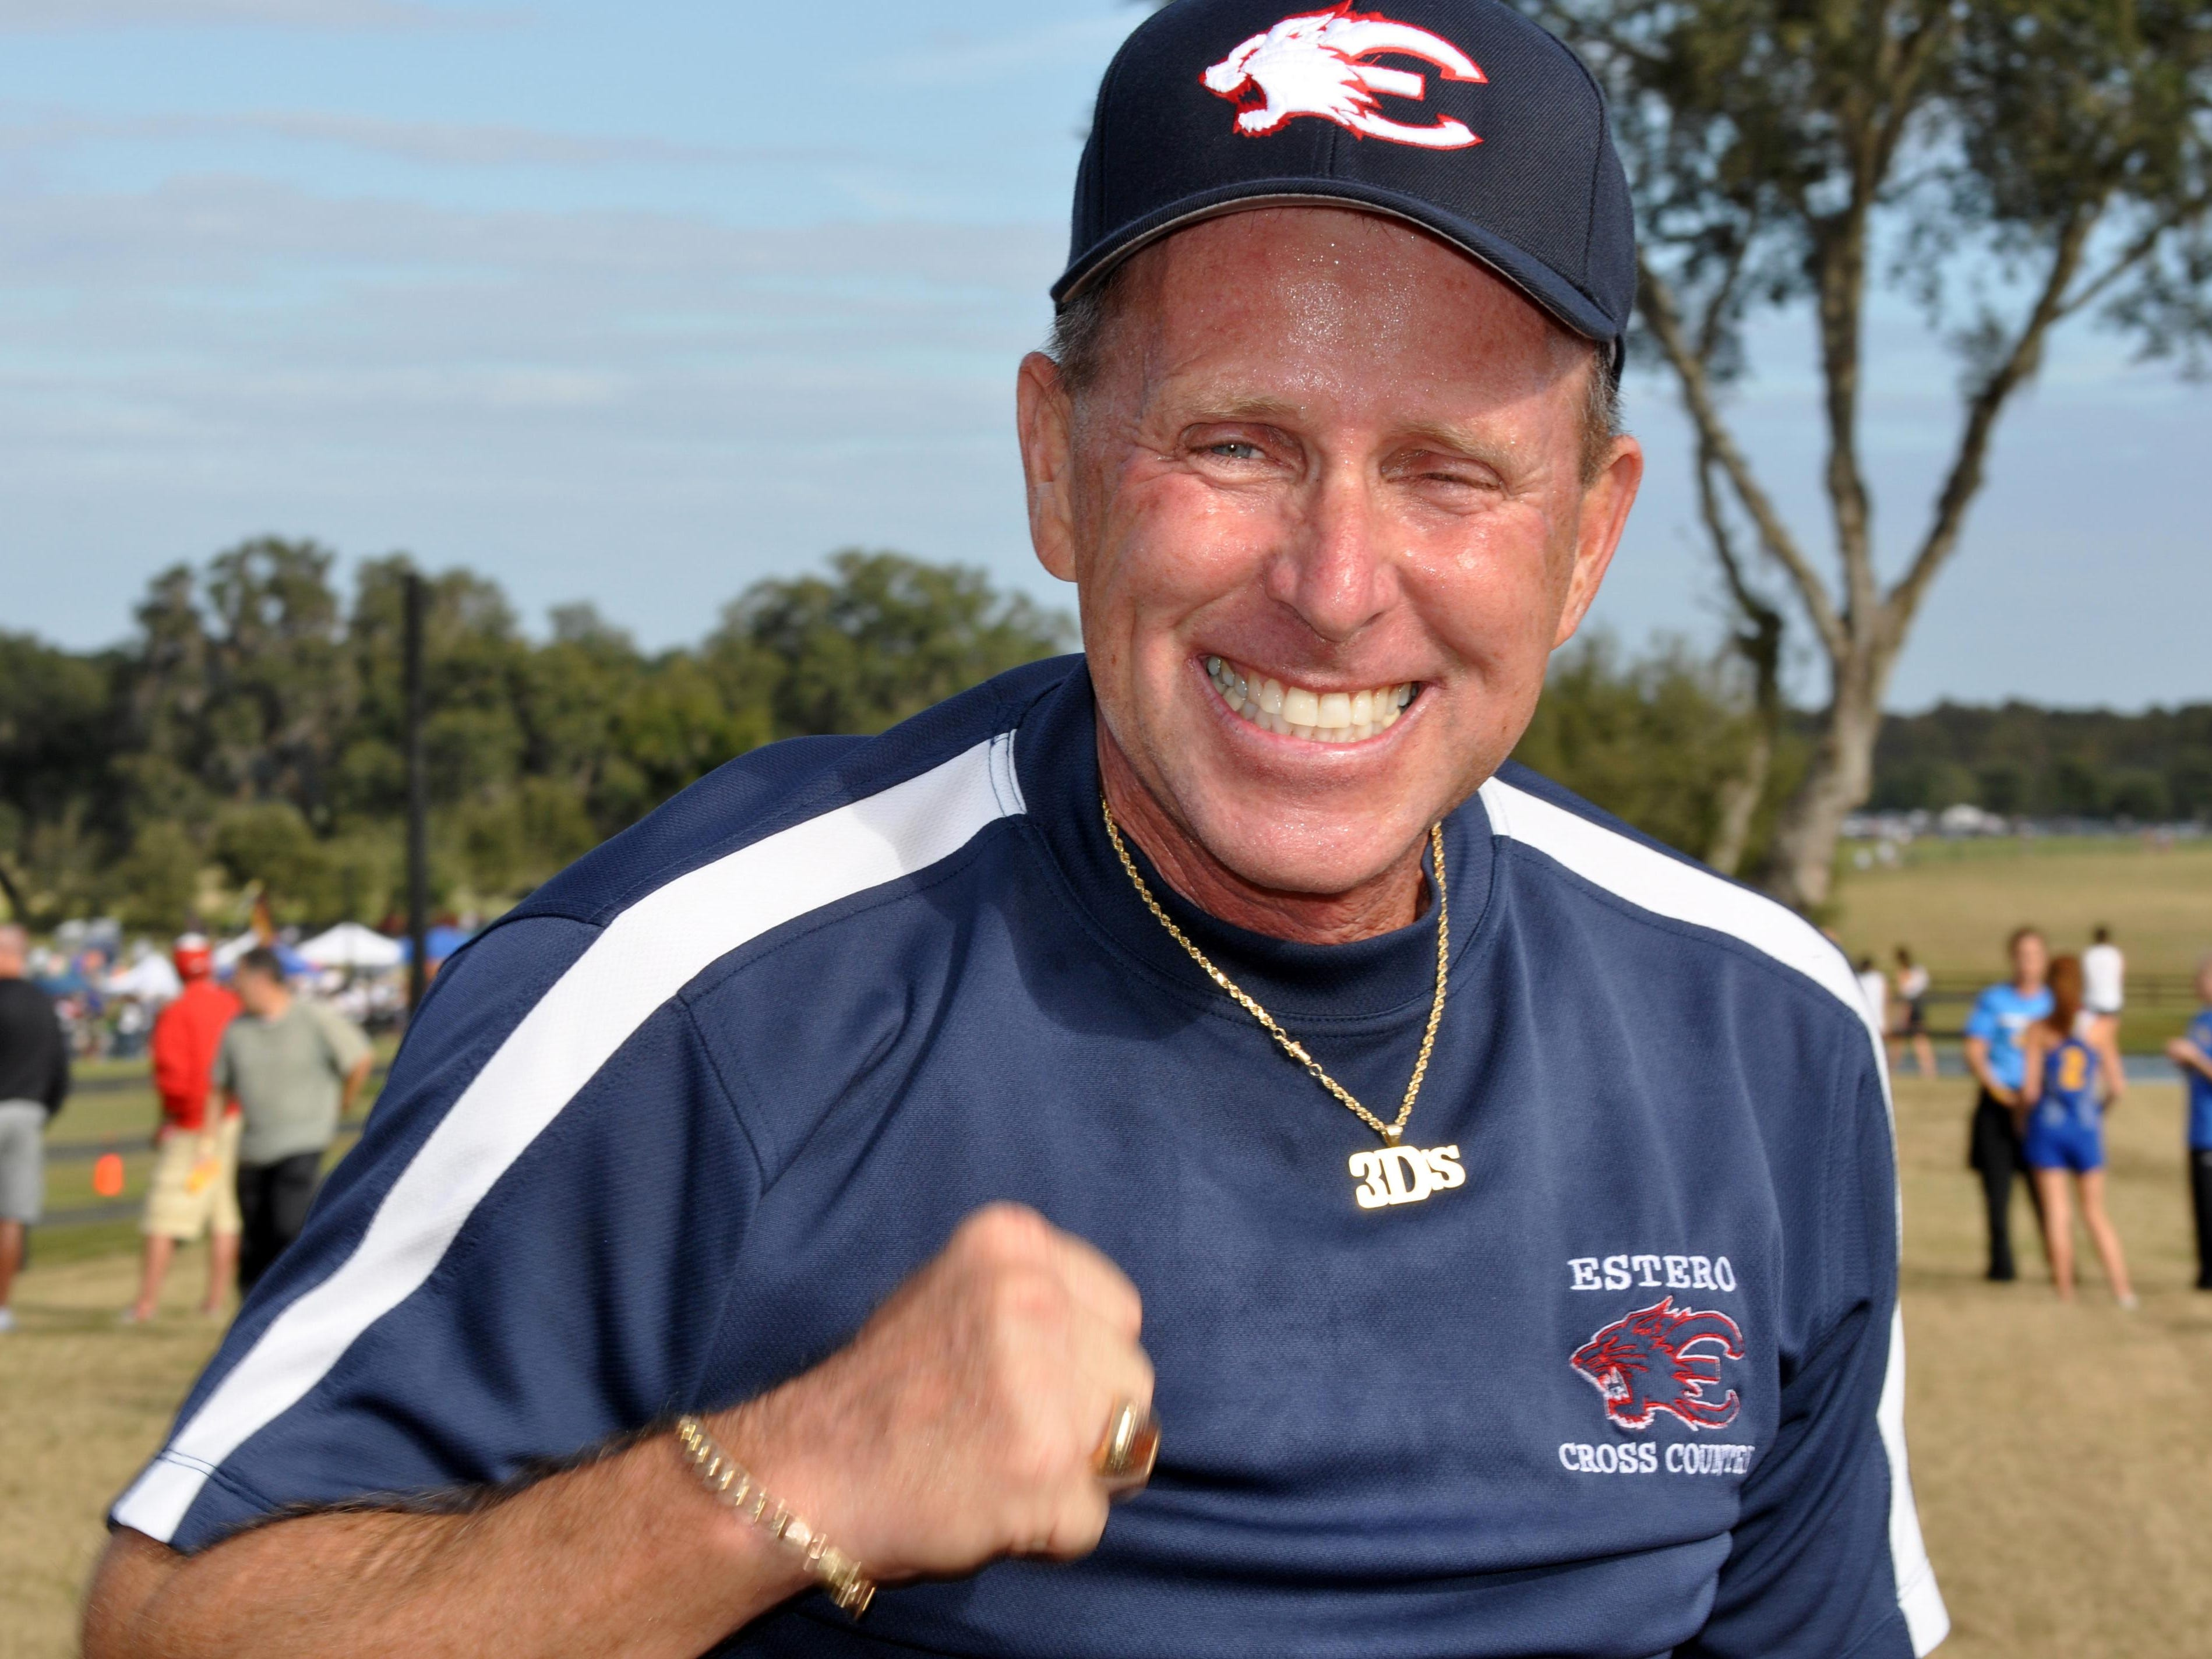 Estero athletic director Jeff Sommer has died. FILE PHOTO/THE NEWS-PRESS... Jeff Sommer, the athletic director of Estero High School who coached numerous runners to state championships, collapsed and died at the state track and field championships Saturday.